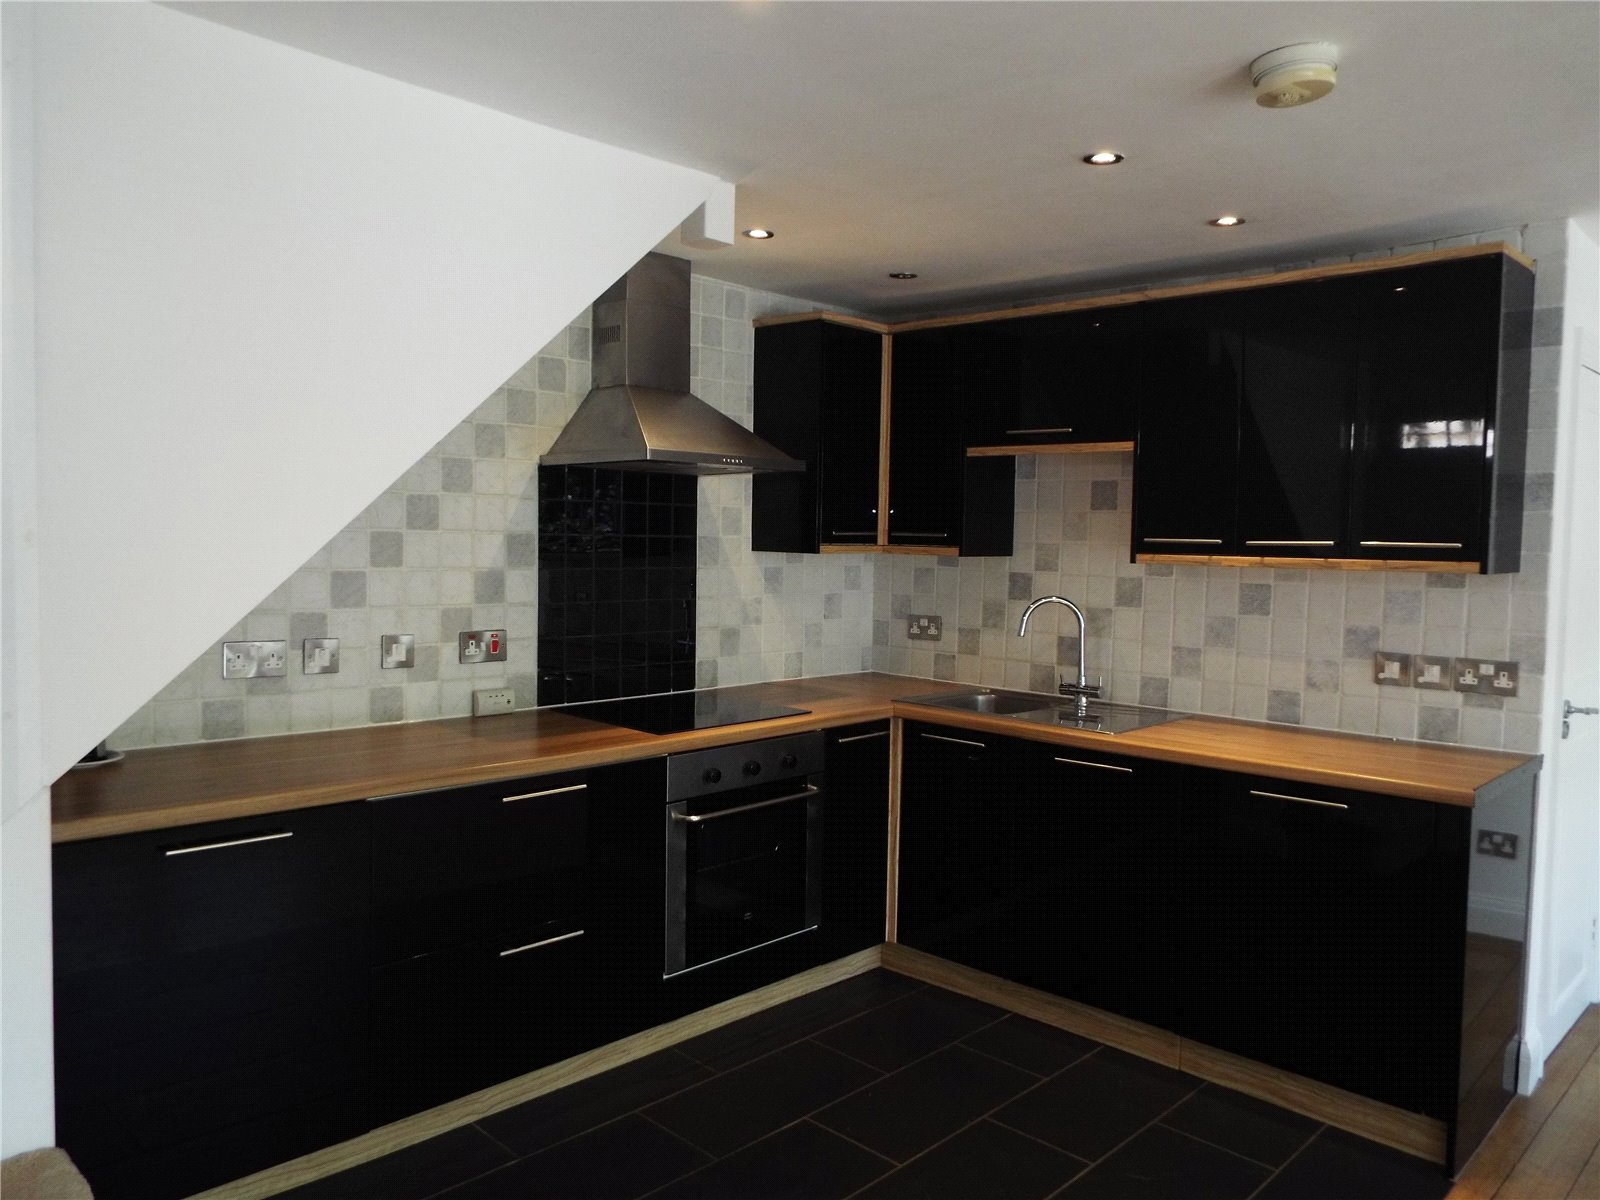 1 bed house to rent in Potters Bar, EN6 1EY - Property Image 1